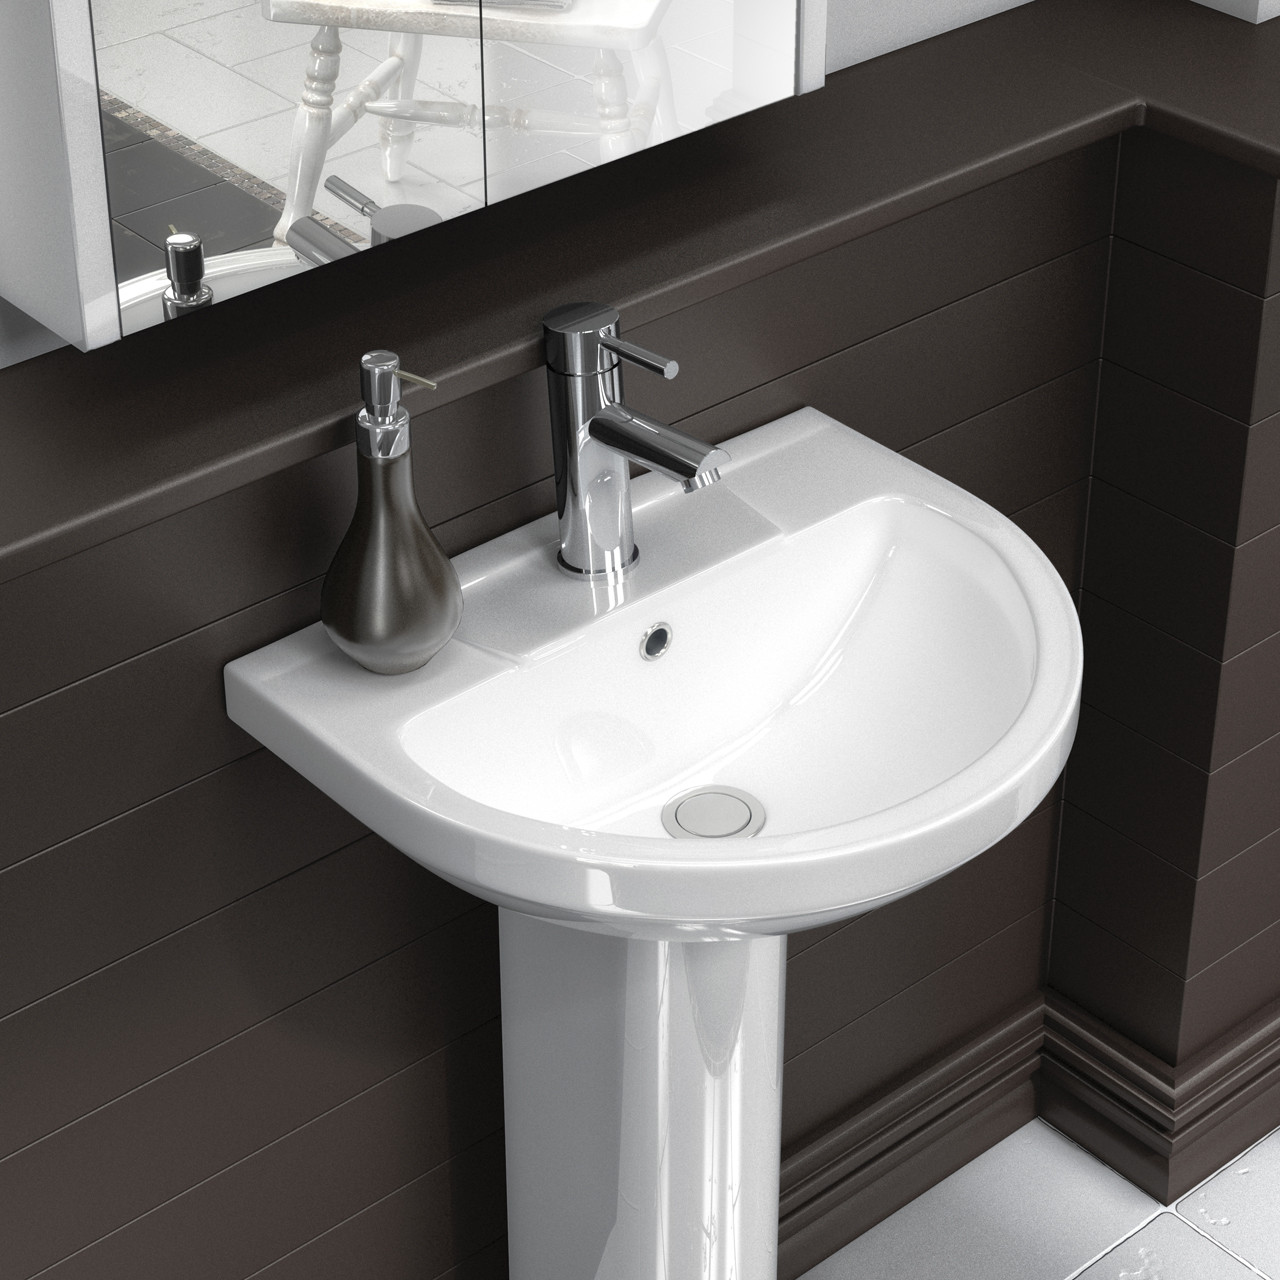 Premier Harmony White 500mm Basin & Pedestal - NCH604 & NCH603